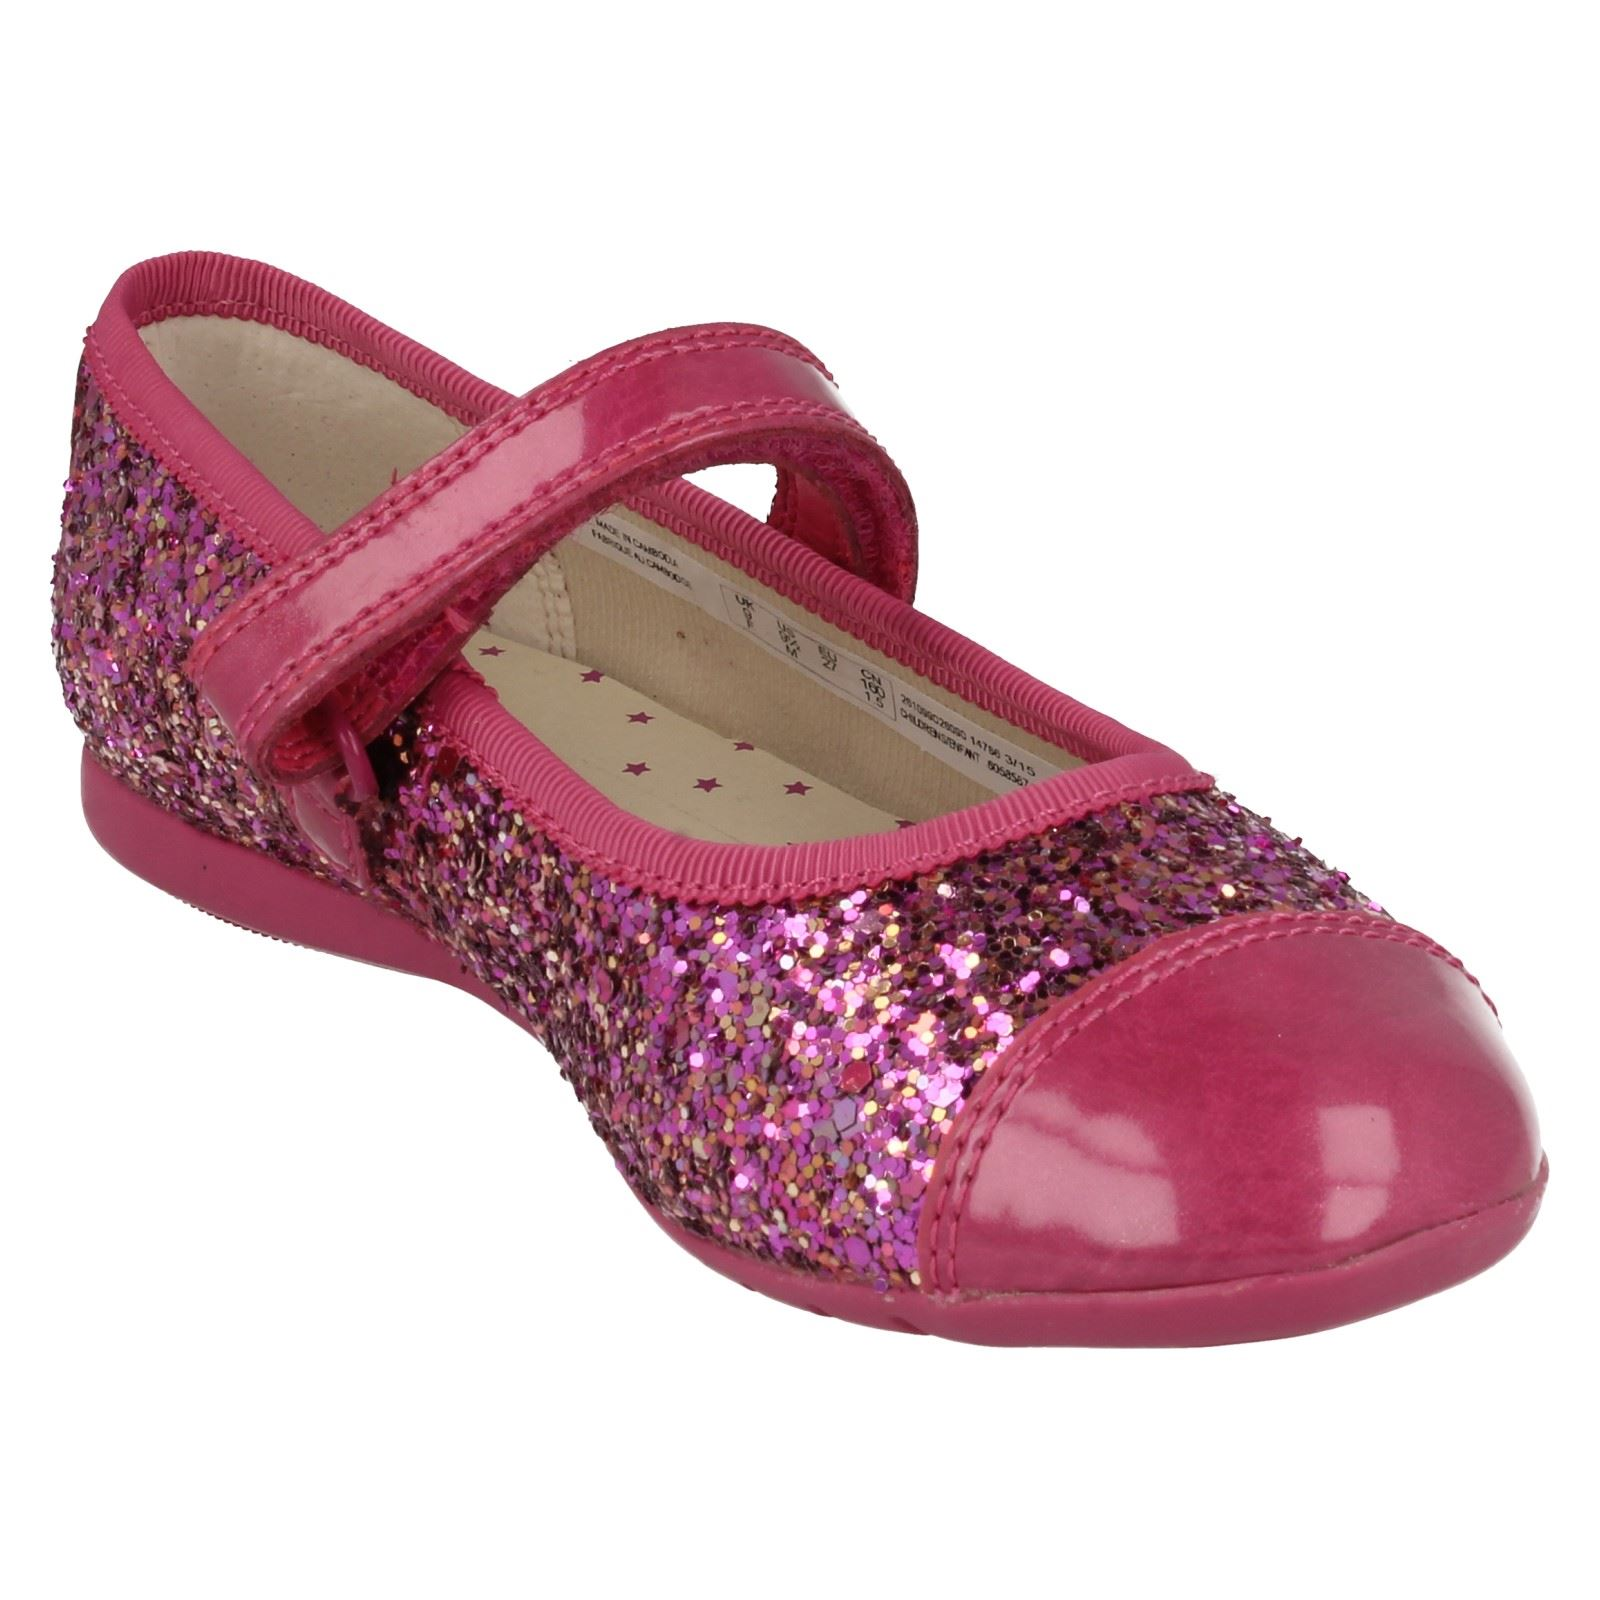 Clarks Girls Sparkly Glitter Mary Jane Party Shoes Dance Idol